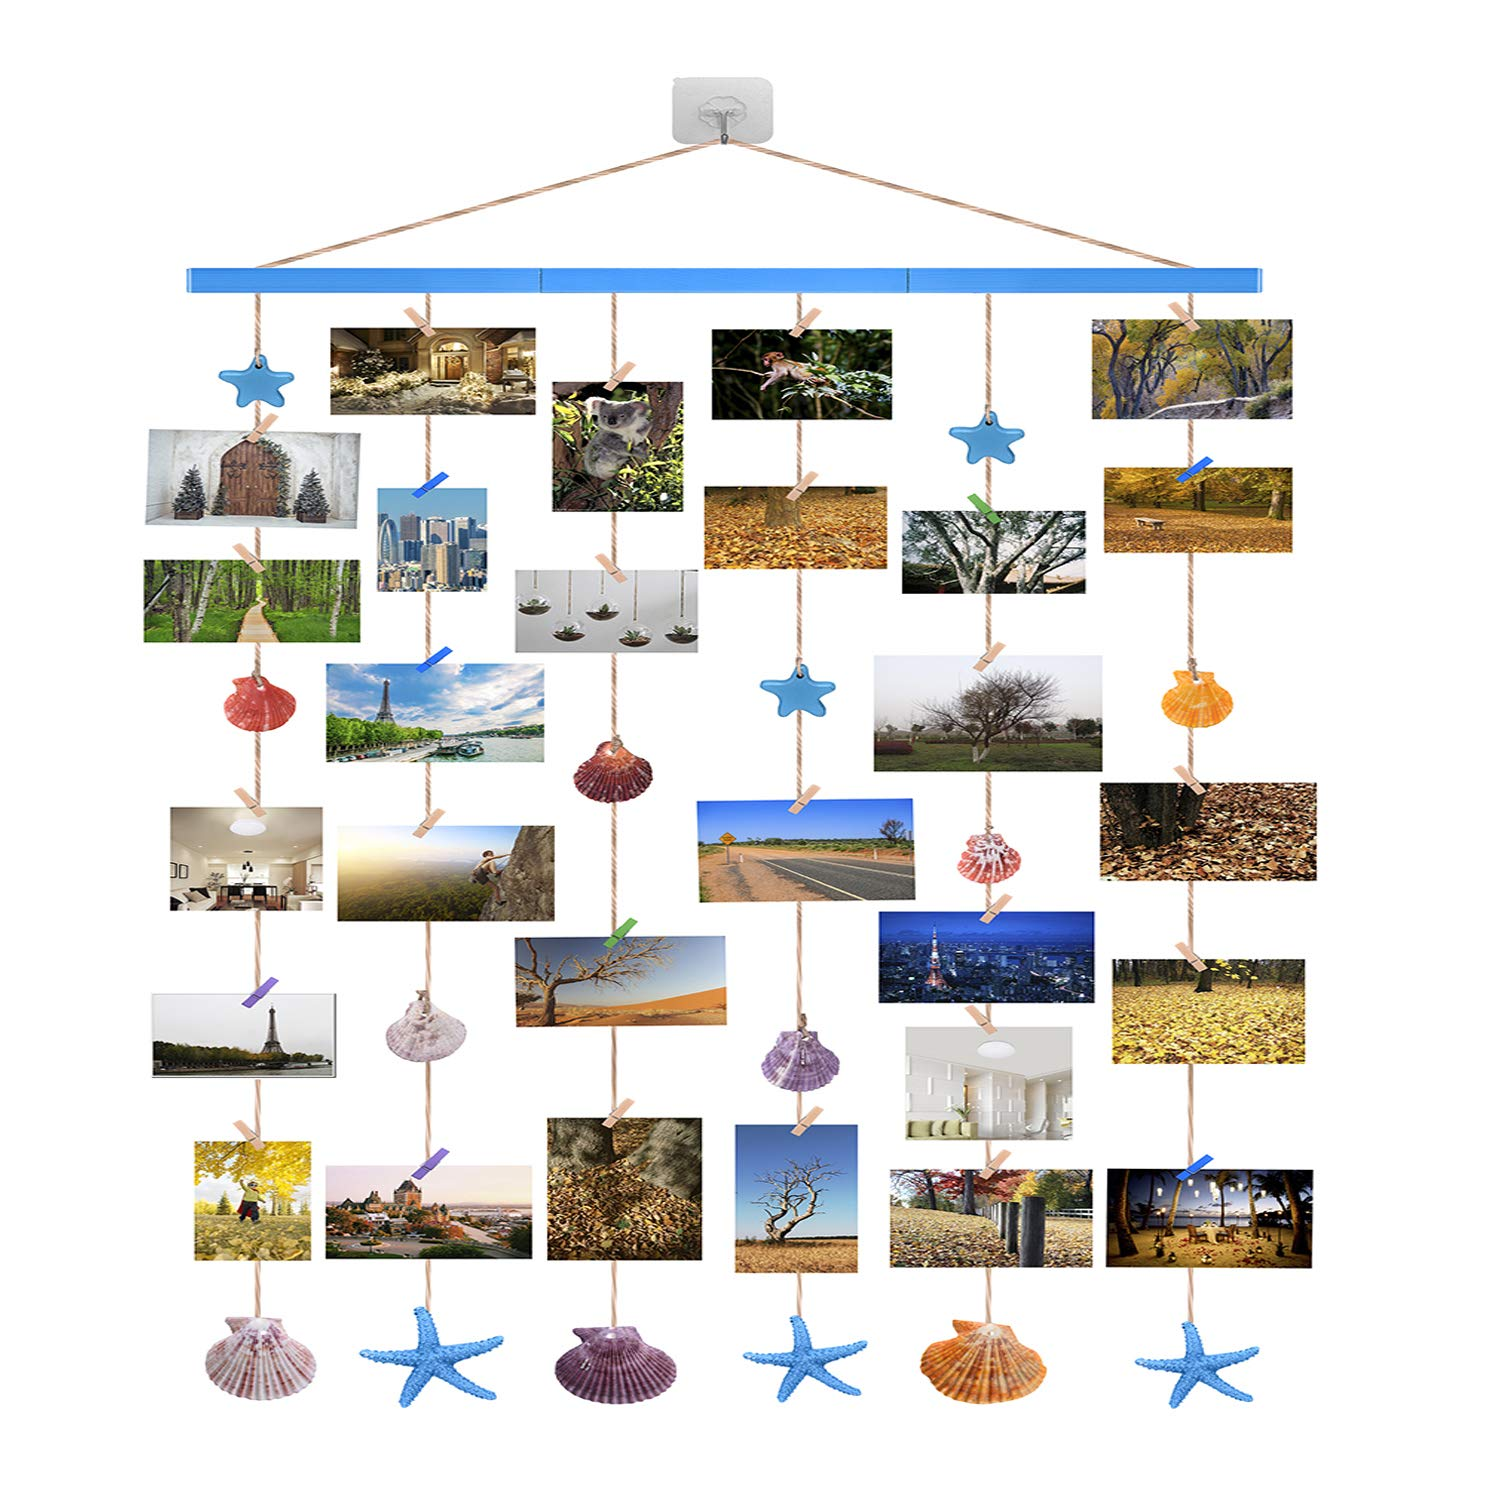 Ecjiuyi Mediterranean Hanging Photo Display,DIY Pictures Organizer Nautical Themed Wall Decor with 20Pcs Clothespin Clips,Seashells,Starfish and Wooden Star Pendant by Ecjiuyi